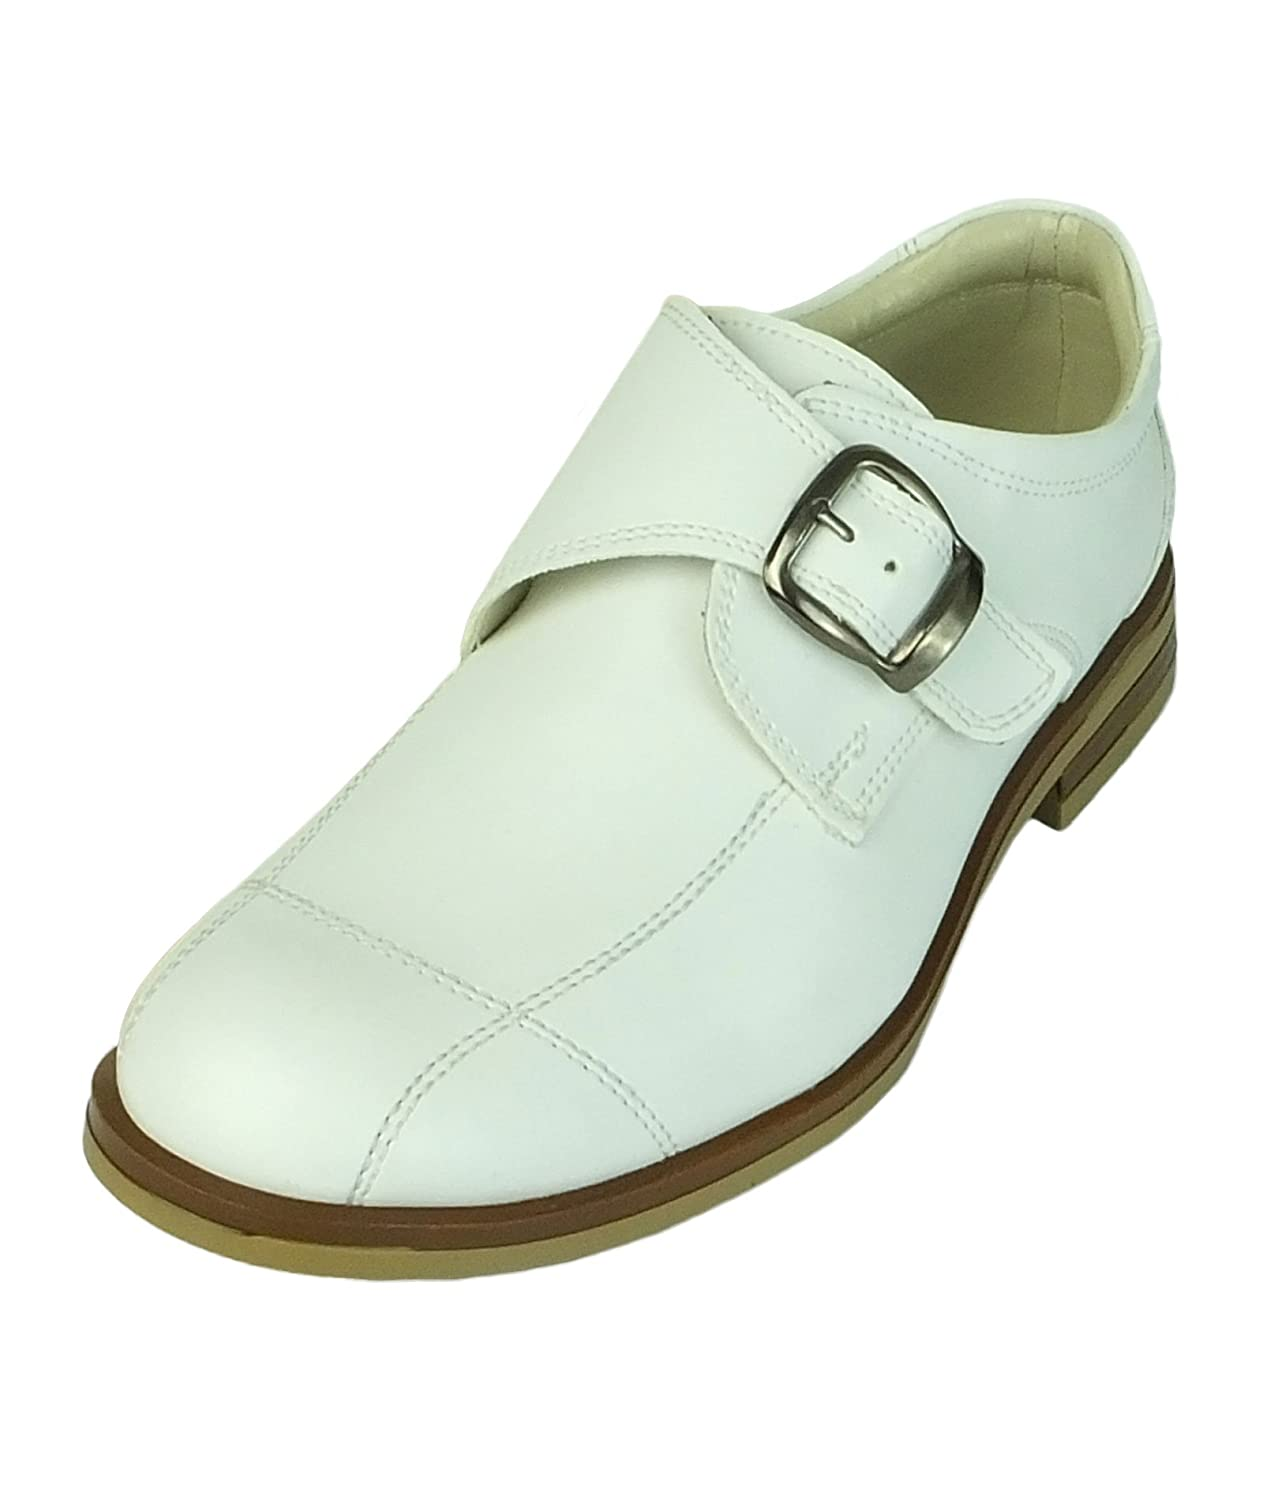 Boys Leather Buckle Fastening Monk Style White Communion Shoes - Click Image to Close